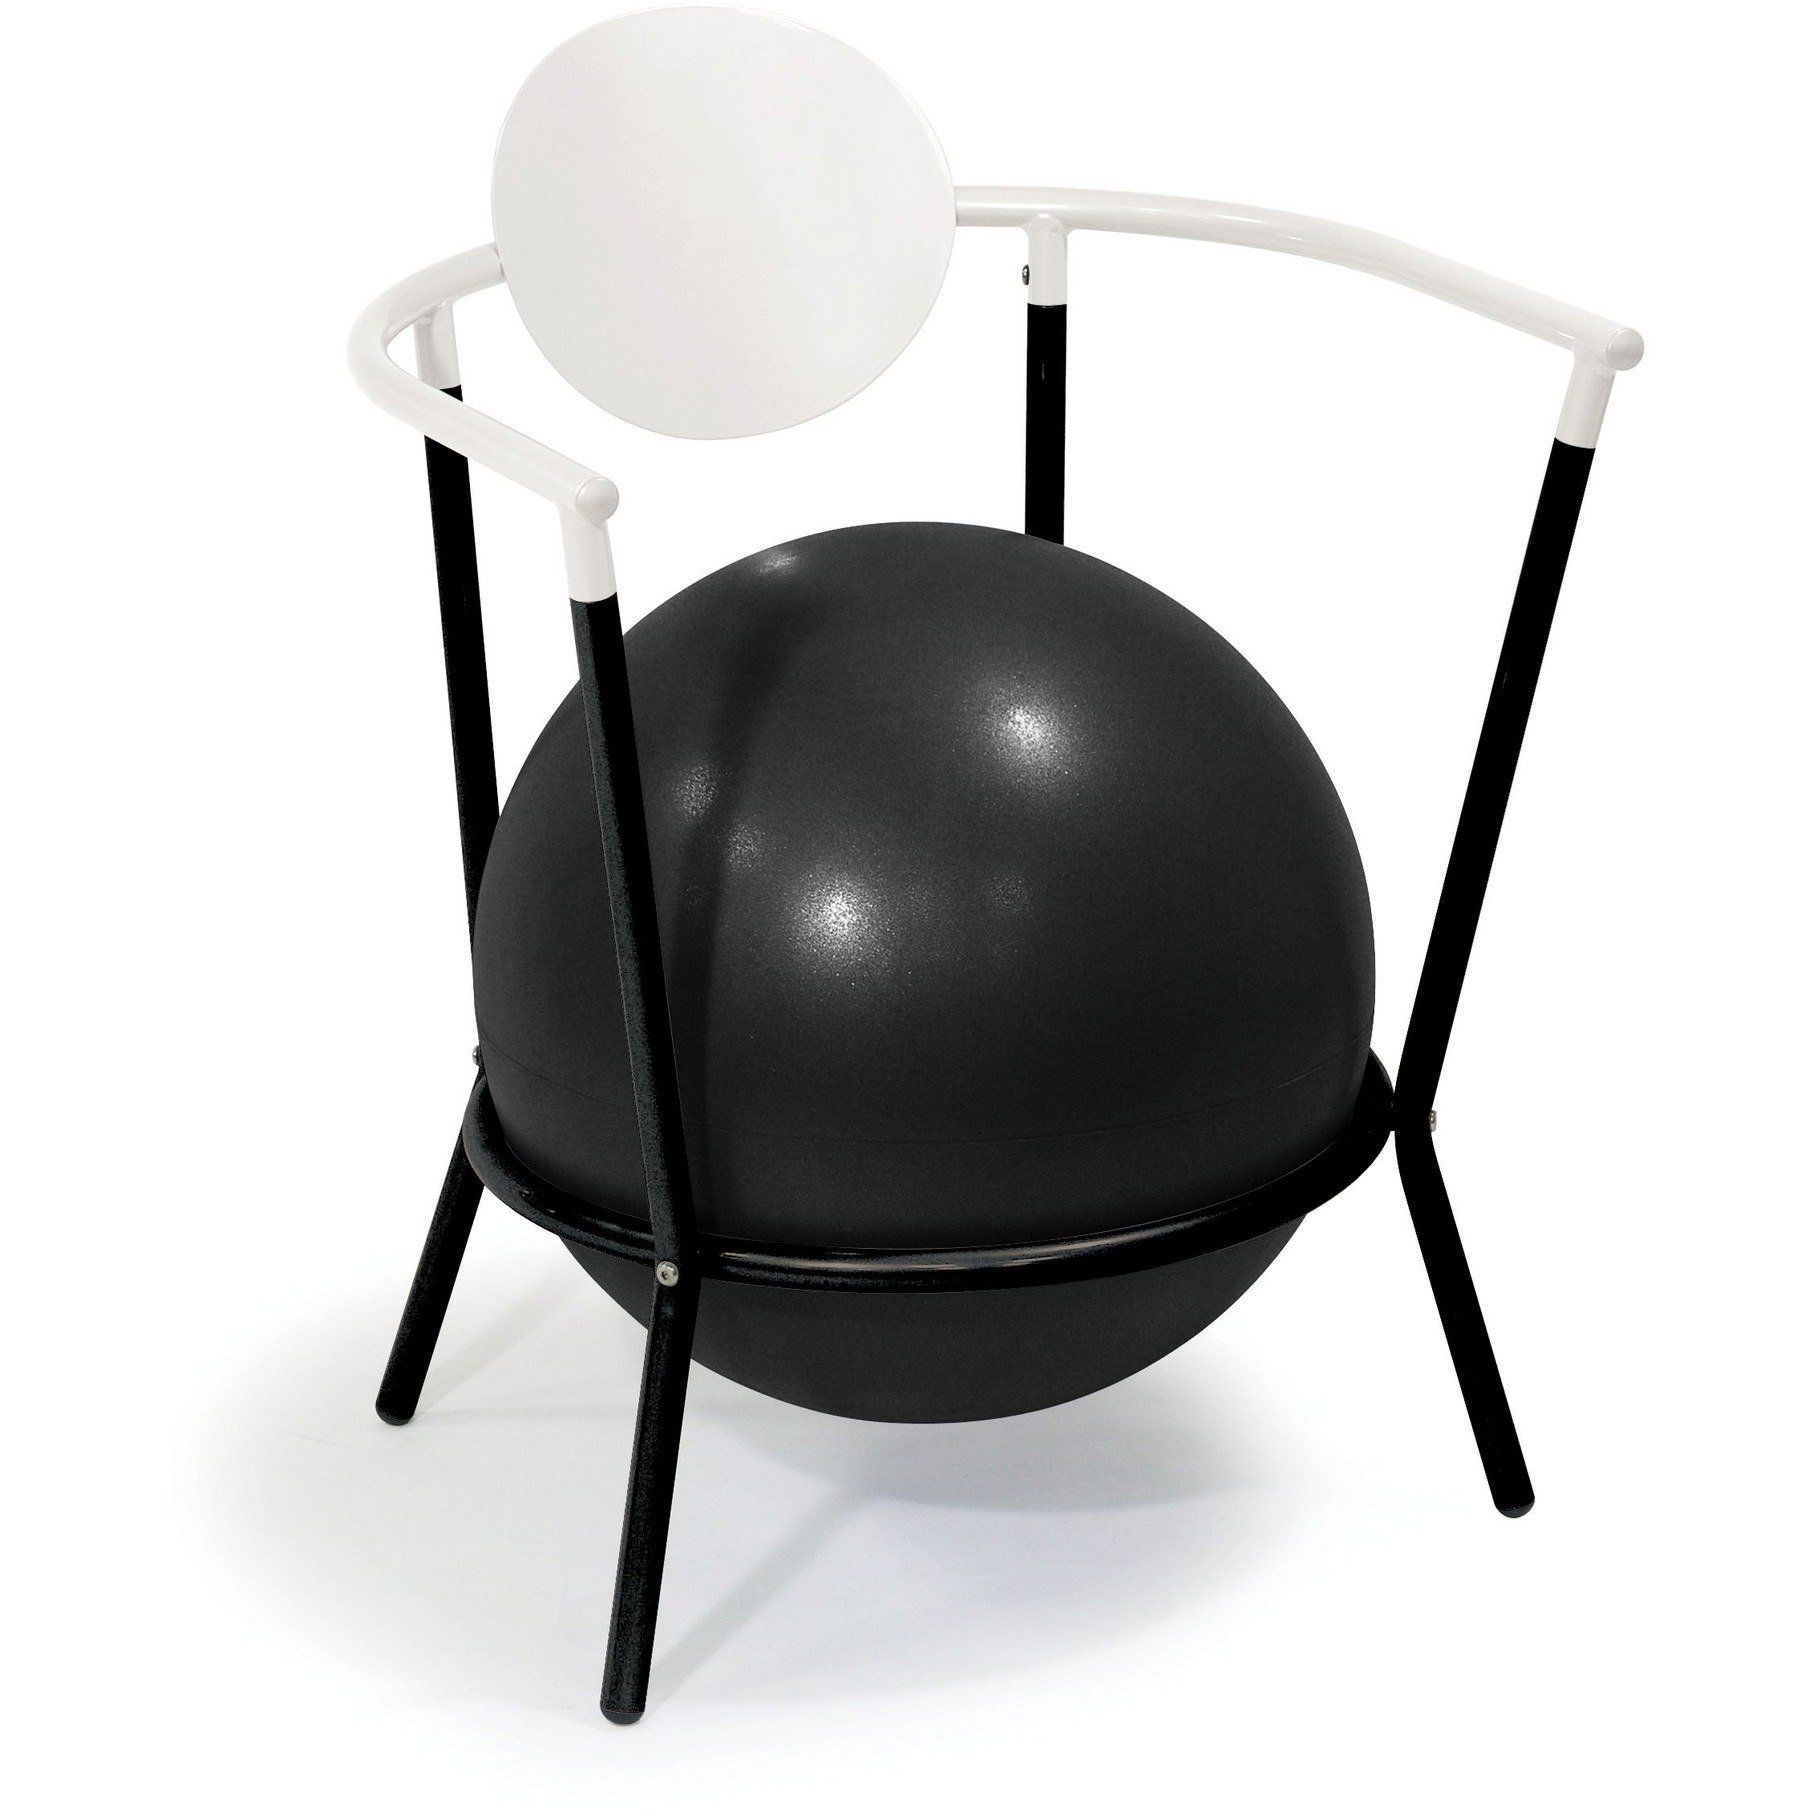 Ant Balance Arm Chair Black now only 160.00!